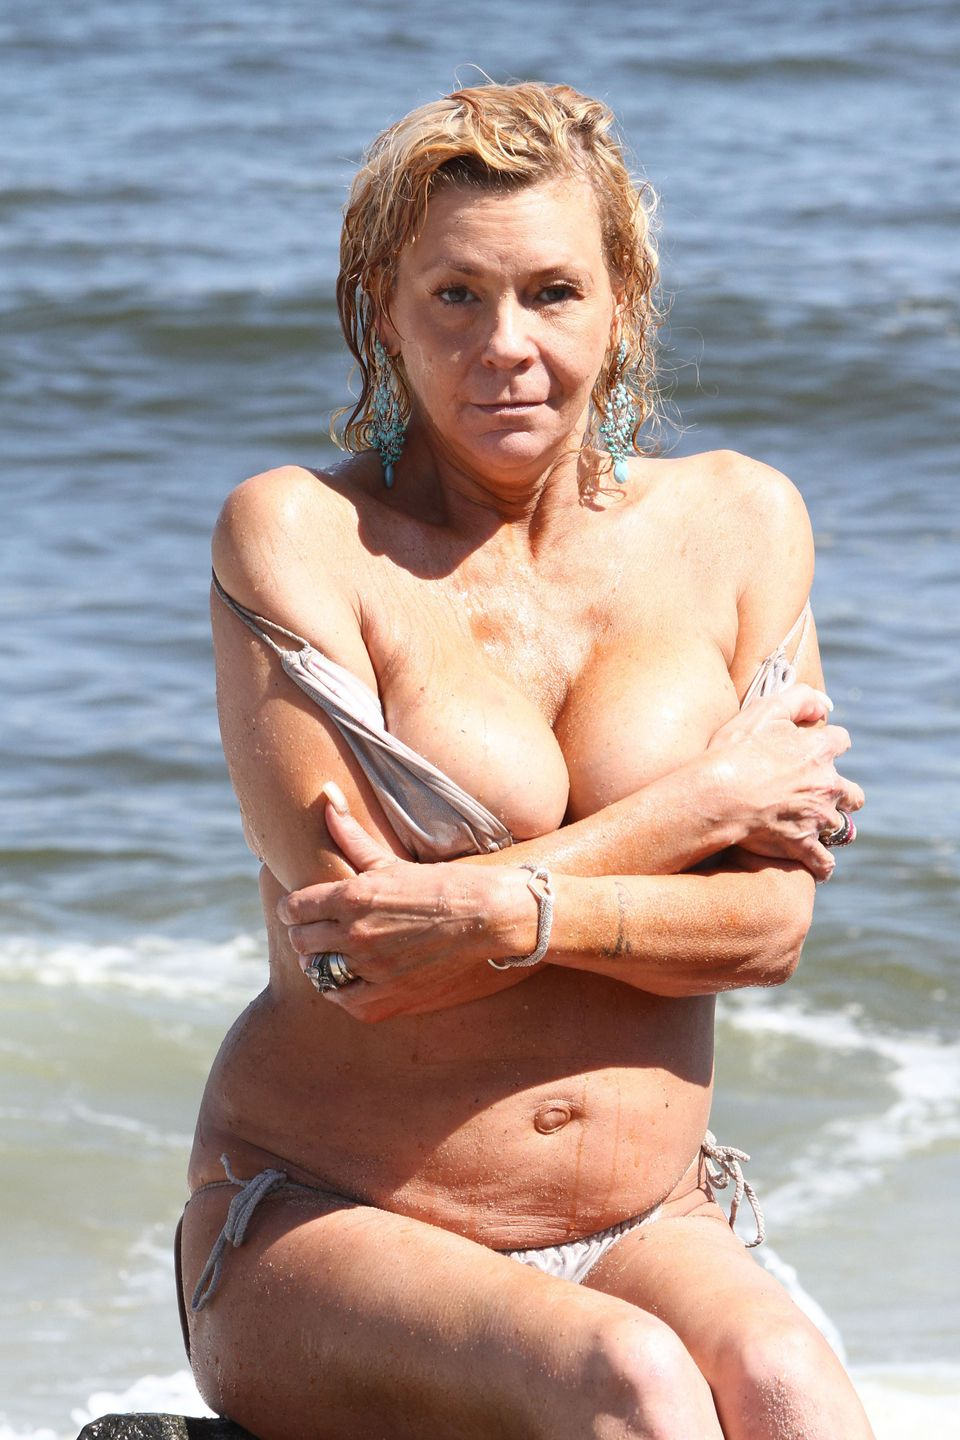 Tanning Mom, aka Patricia Krentcil, peels off her little silver bikini top while catching some sun on the beach in New Jersey